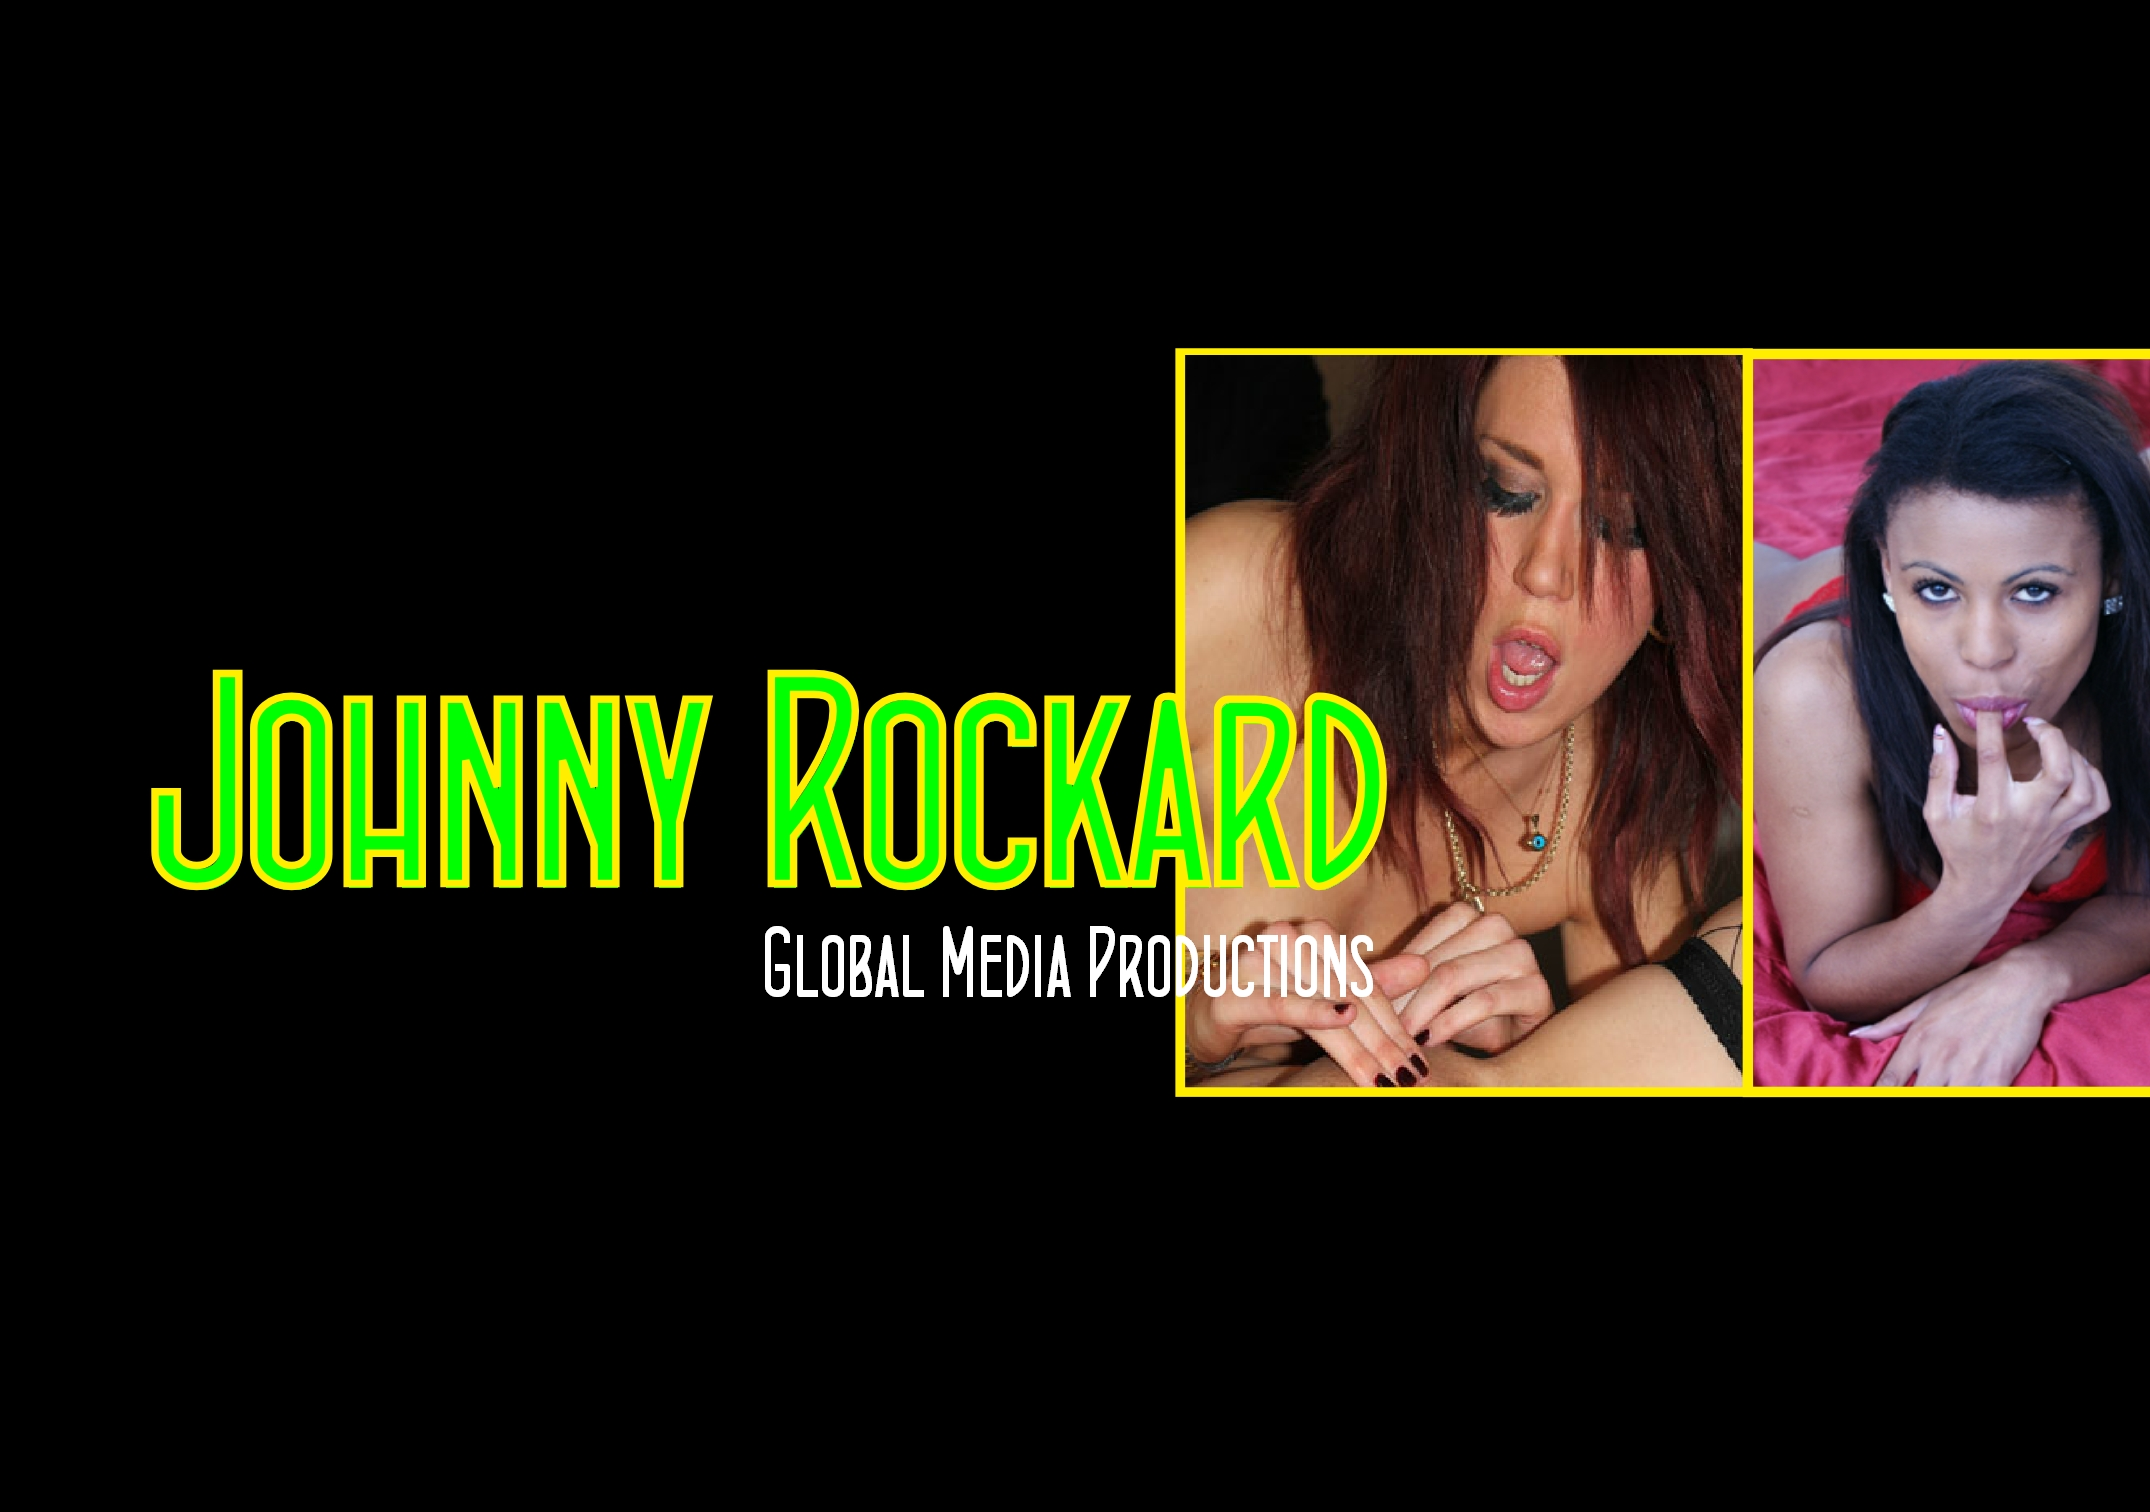 Johnny Rockard